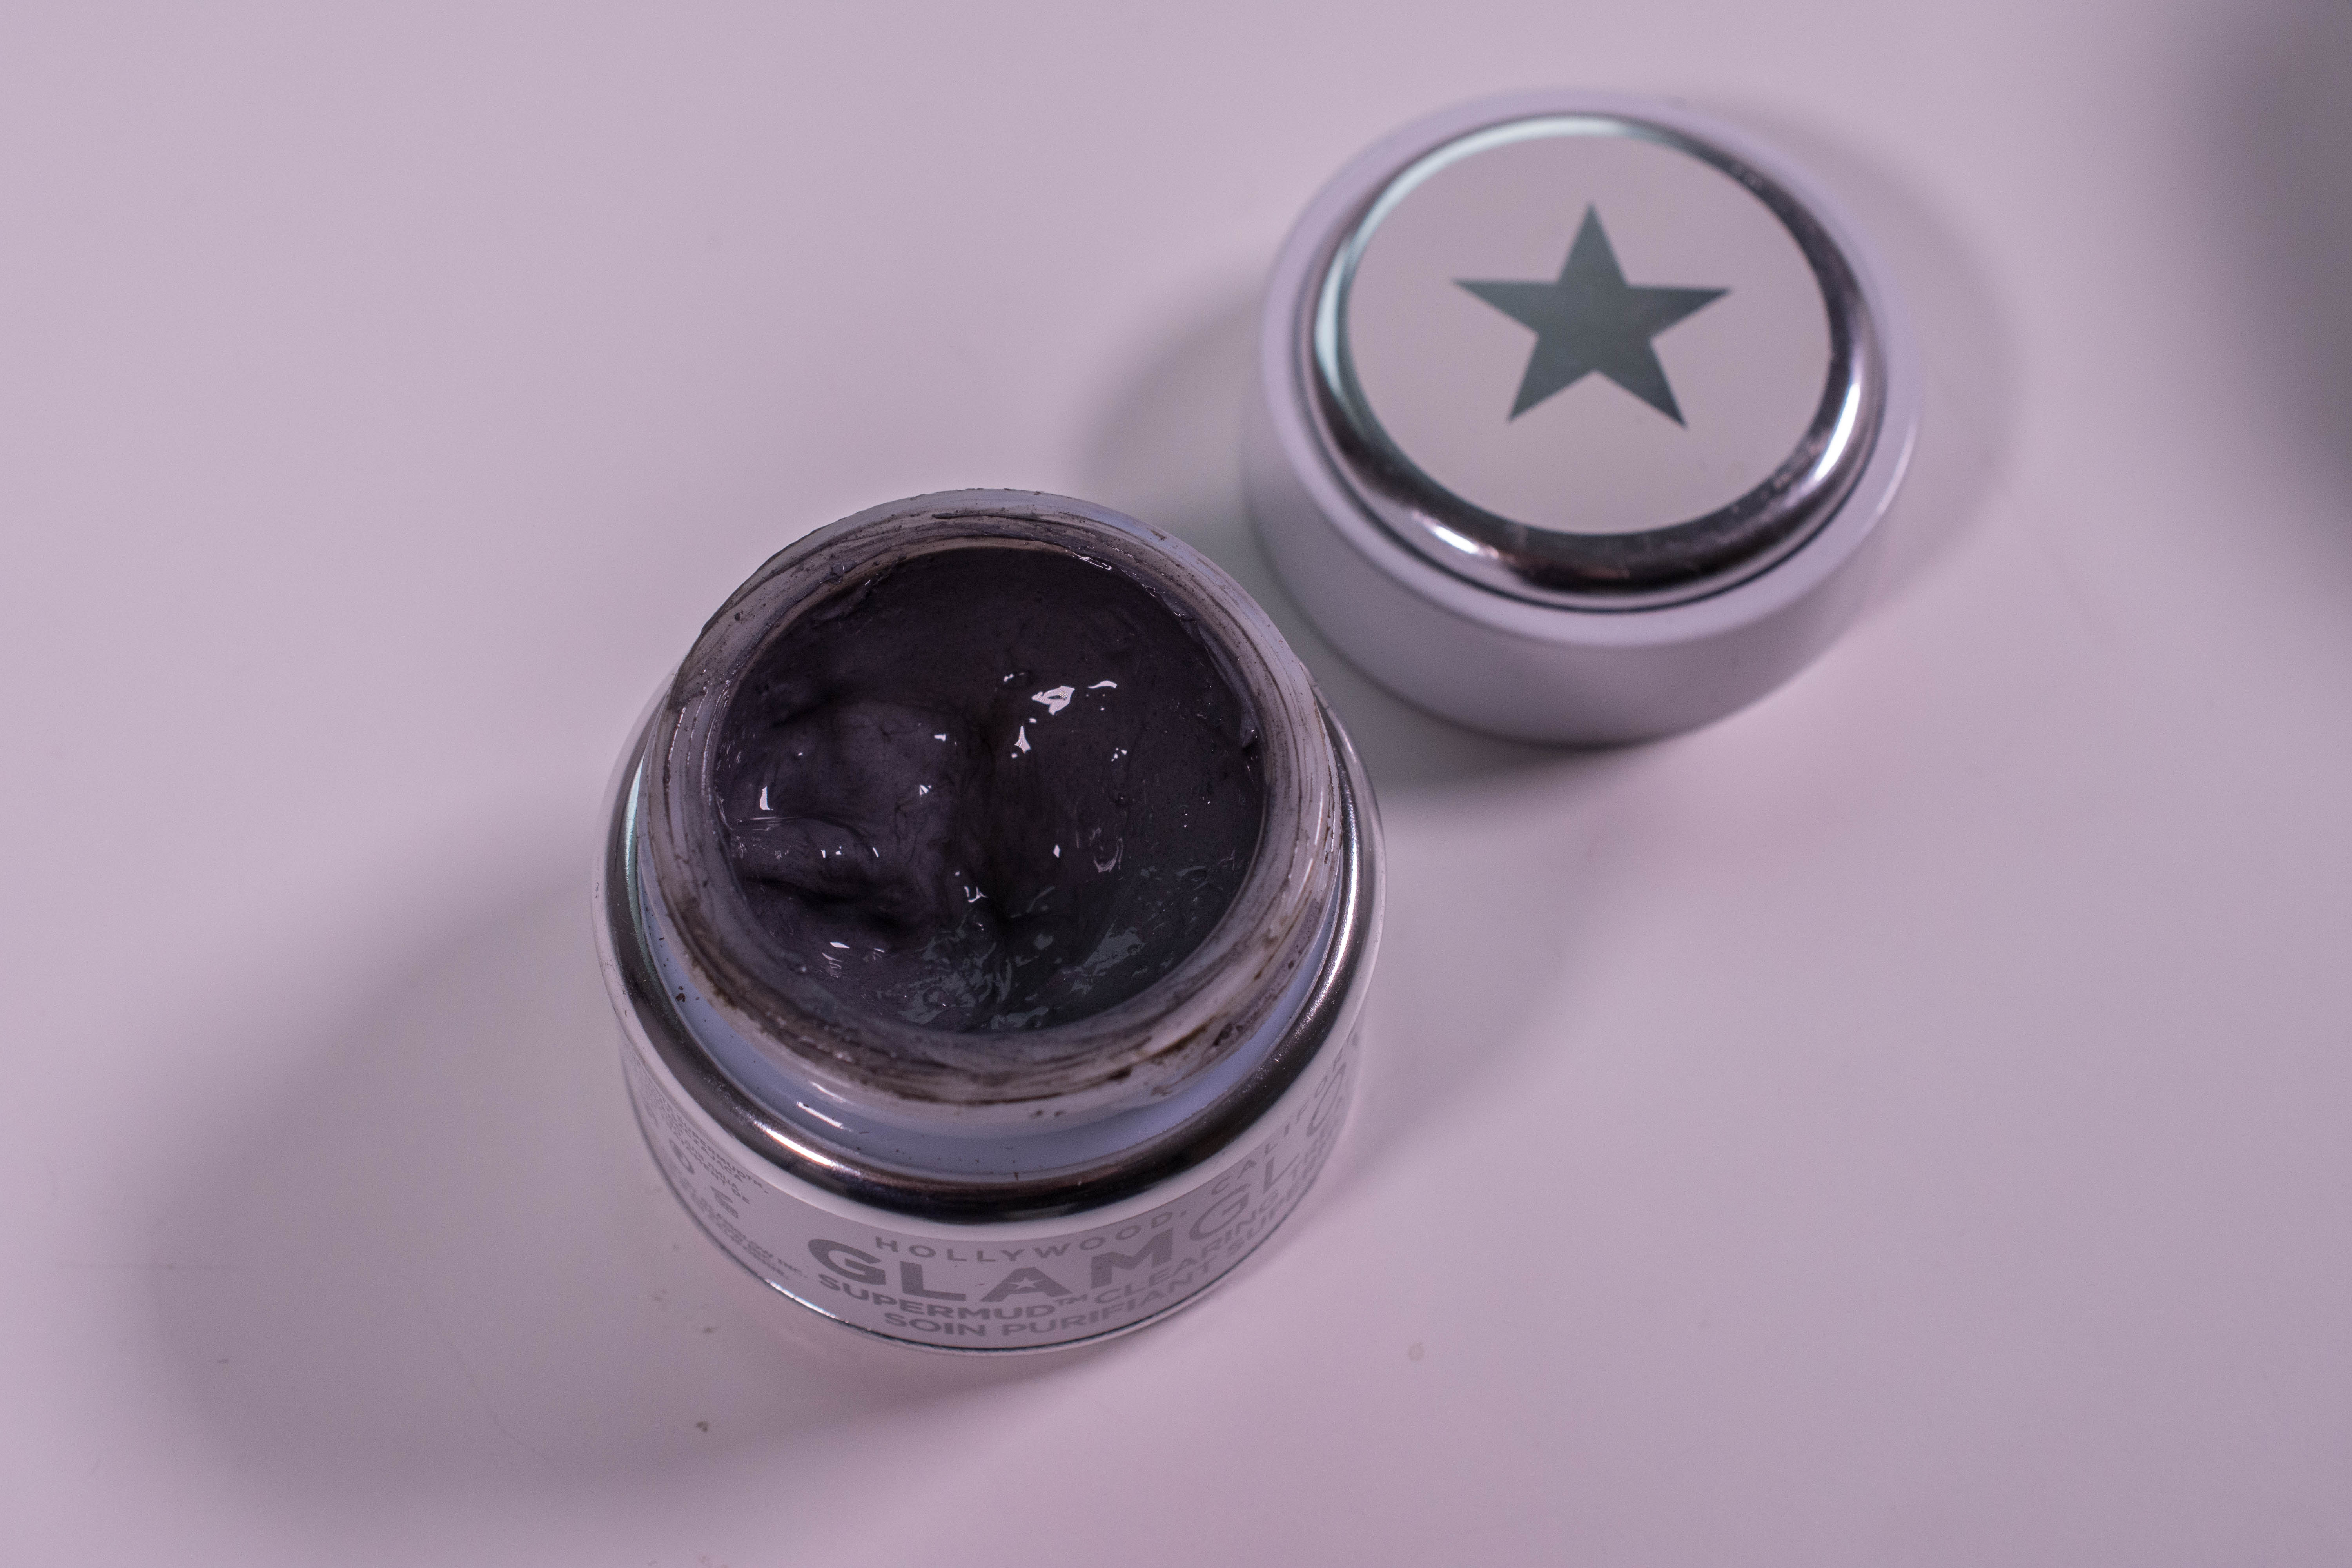 The product - Glam Glow Supermud Clearing Treatment